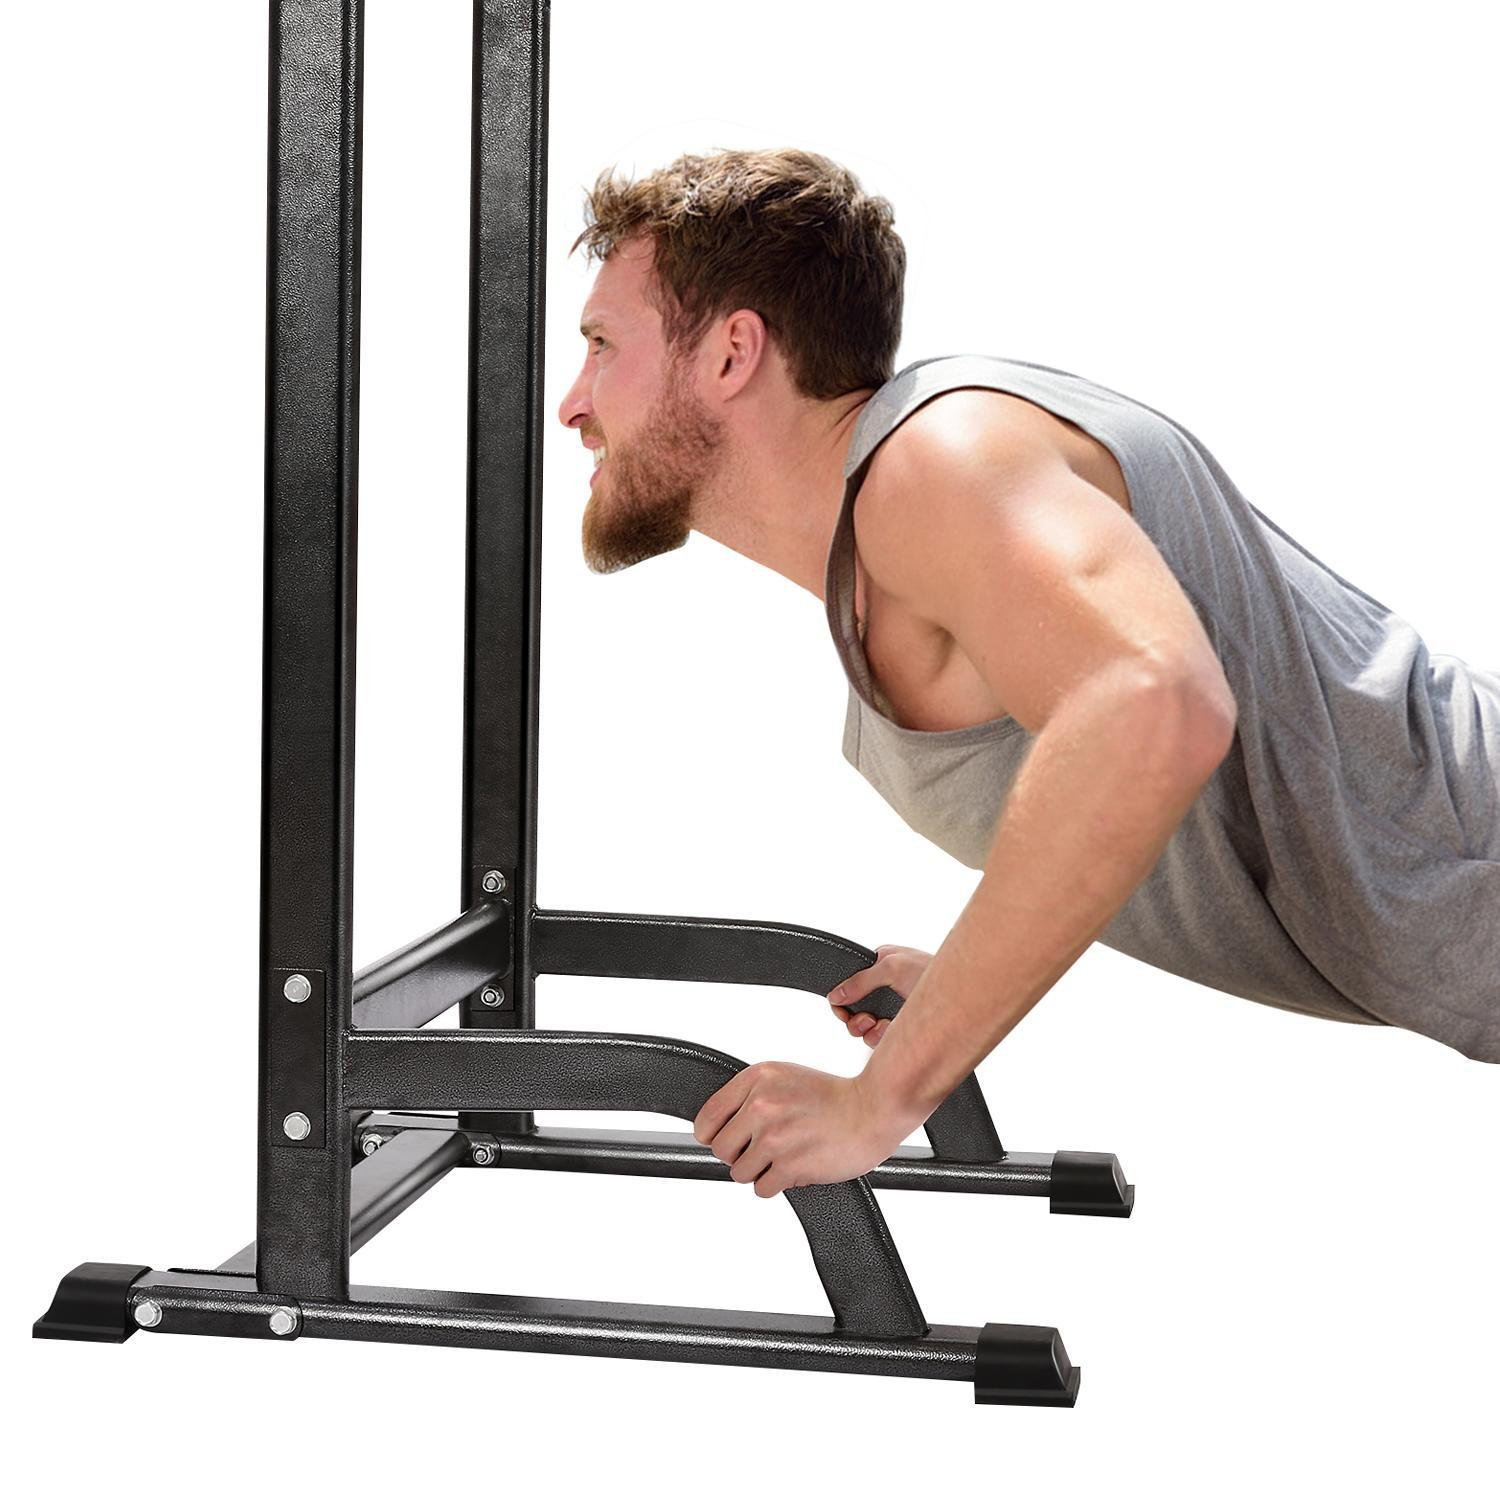 Adjustable Pull Up Chin Up Bar,Pull Up Stand Power Tower Strength Power Tower Fitness Workout Station by Rapesee (Image #4)